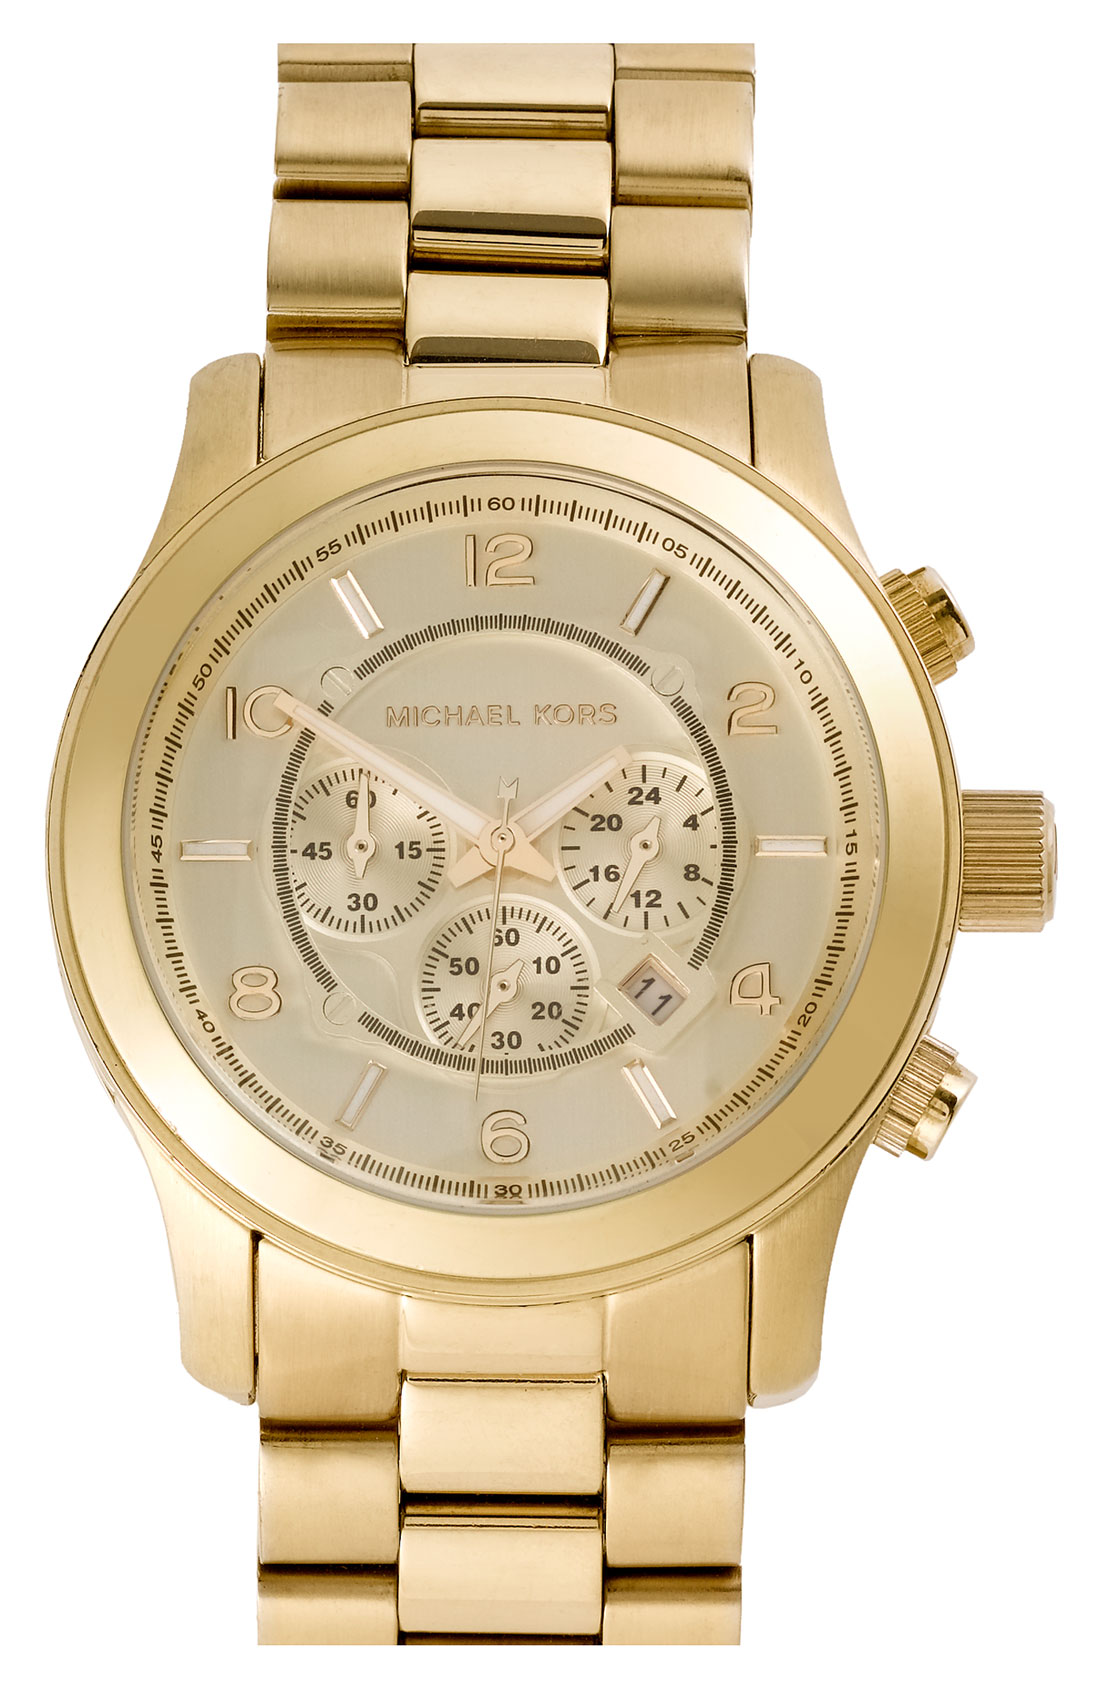 Men's gold watches – The perfect men's jewellery